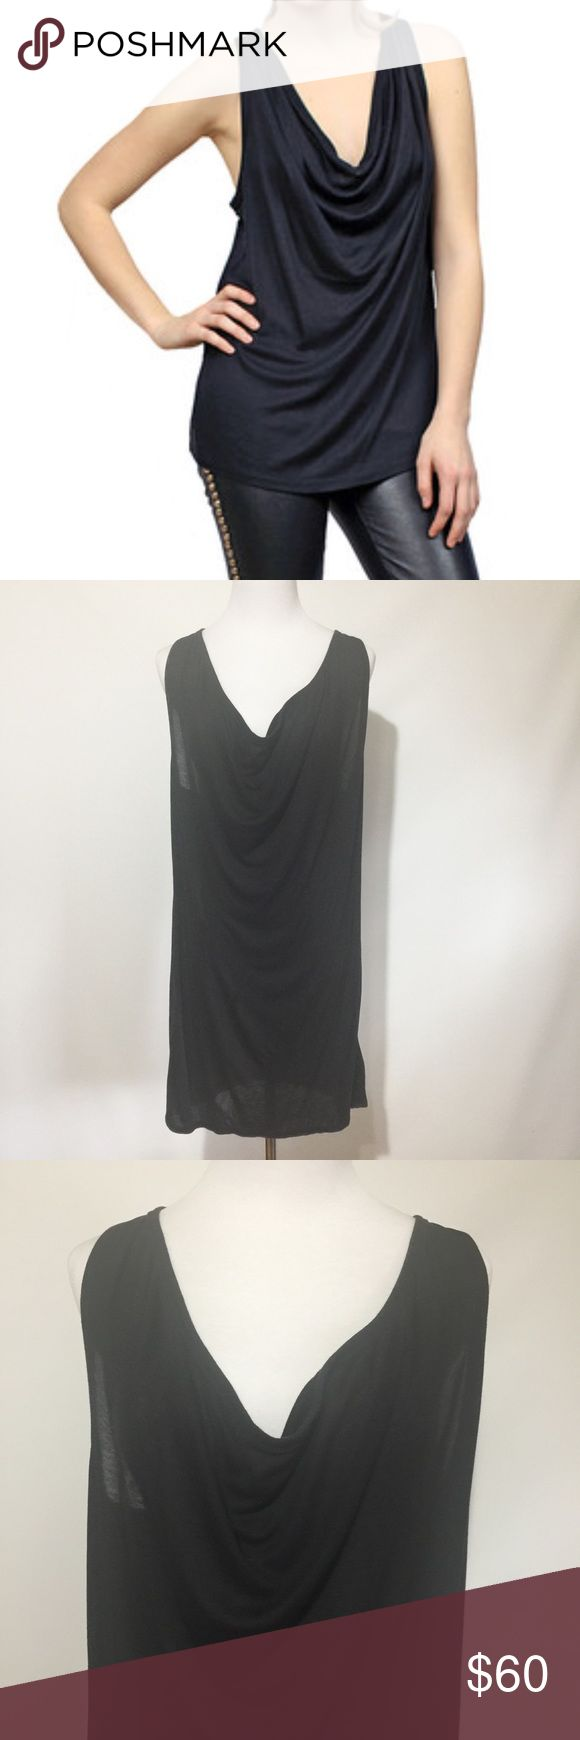 T ALEXANDER WANG COWL NECK SHEER TANK GUC. Alexander Wang T Sheer Cowl Tank. Black jersey tank with cowl neck and a racer back. Flattering drape. The signature Wang Tee casual-chic! - 100% tencel. Light makes it appear faded but it's not! Alexander Wang Tops Tank Tops